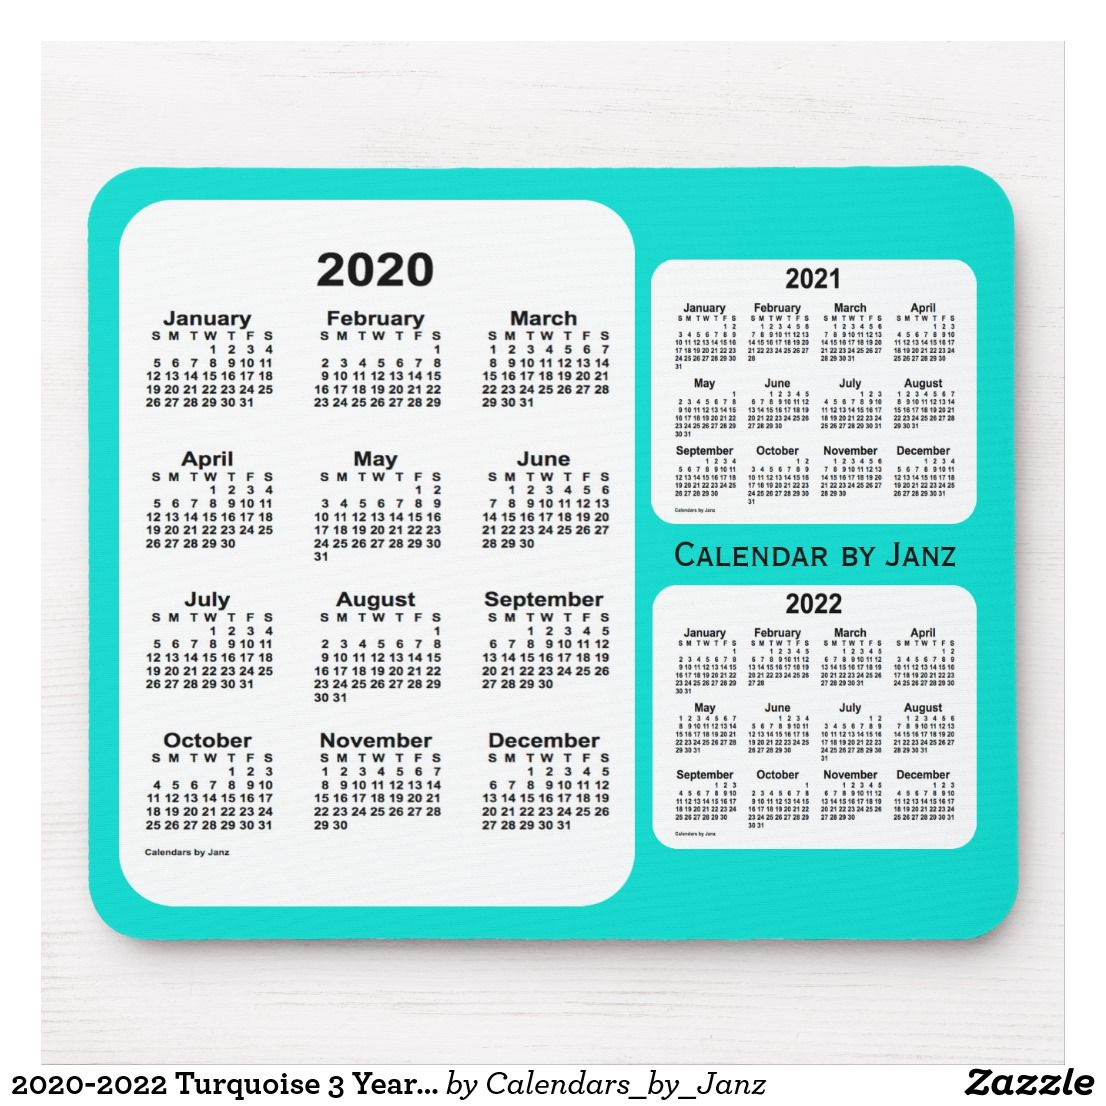 20202022 Turquoise 3 Year Calendar by Janz Mouse Pad